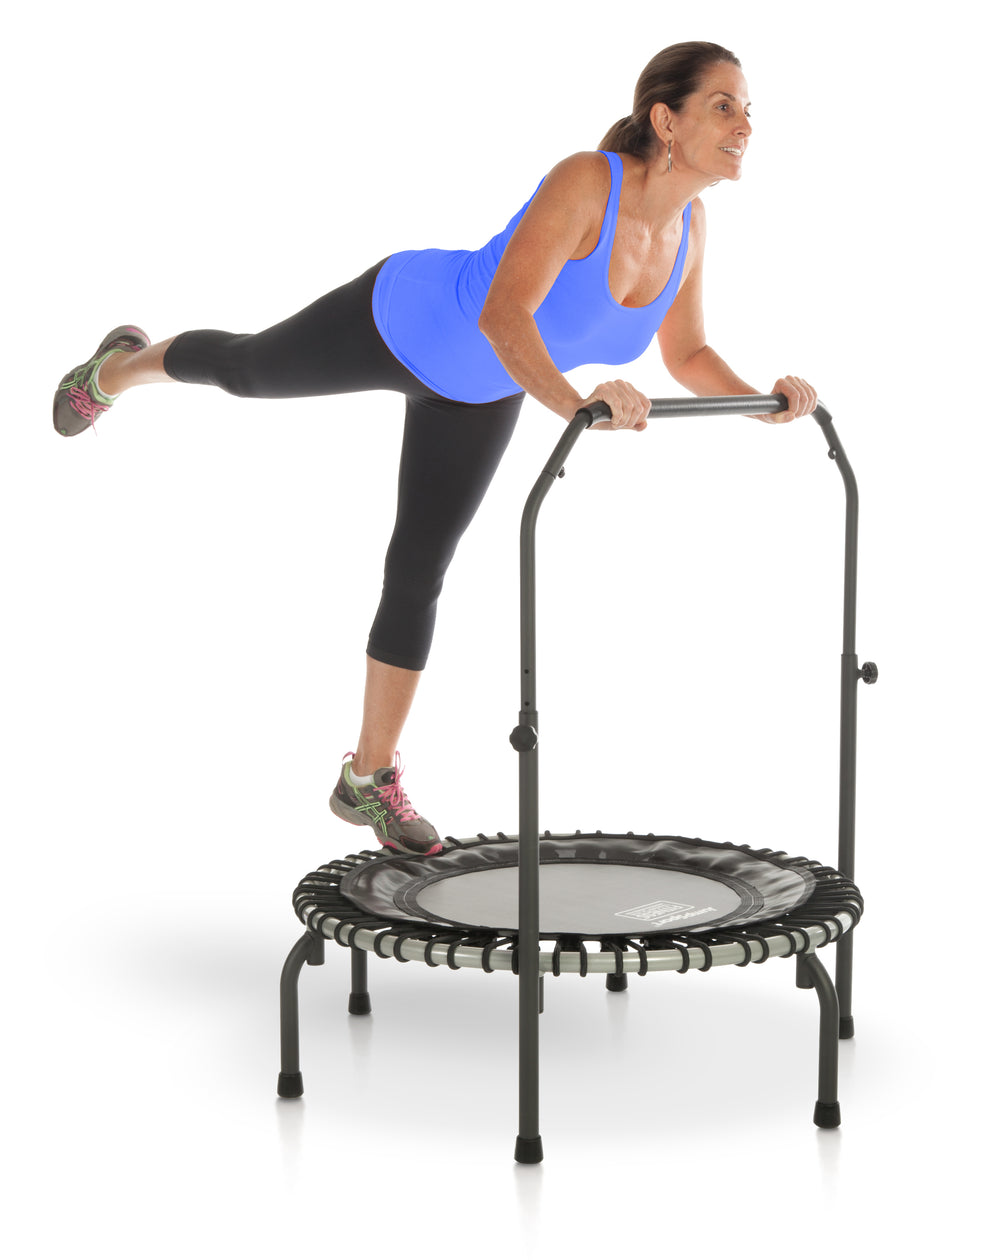 JumpSport 350 V2 Fitness Trampoline with Handle